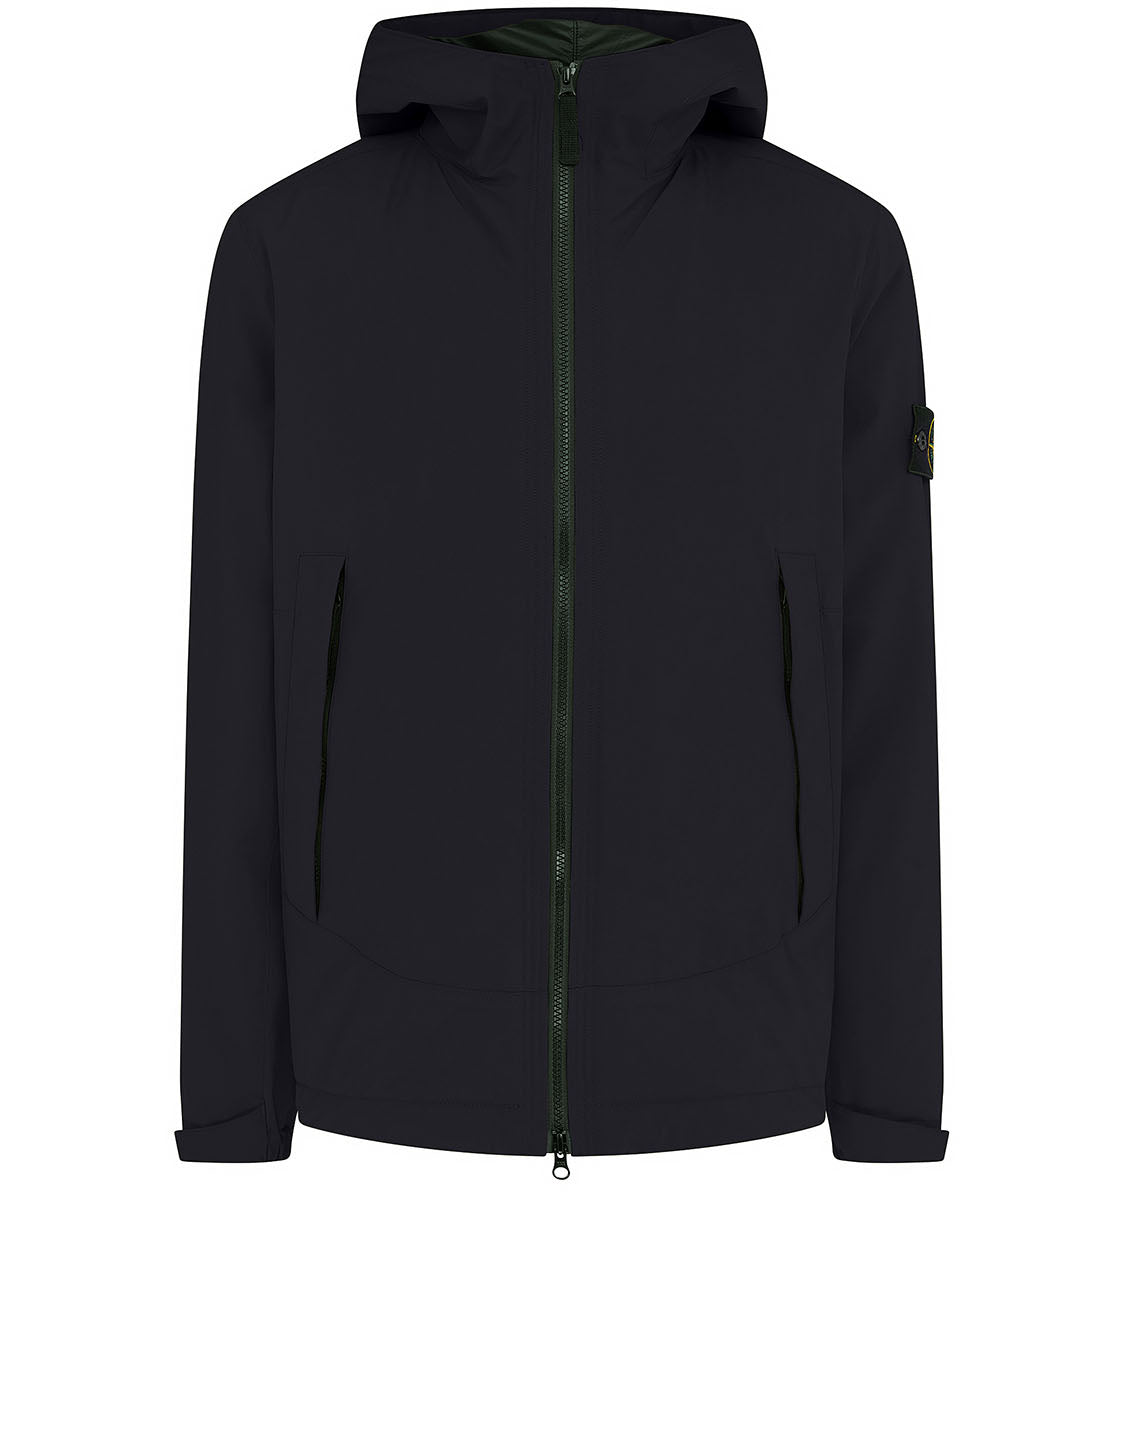 41627 SOFT SHELL-R WITH PRIMALOFT® INSULATION: Hooded blouson in Black